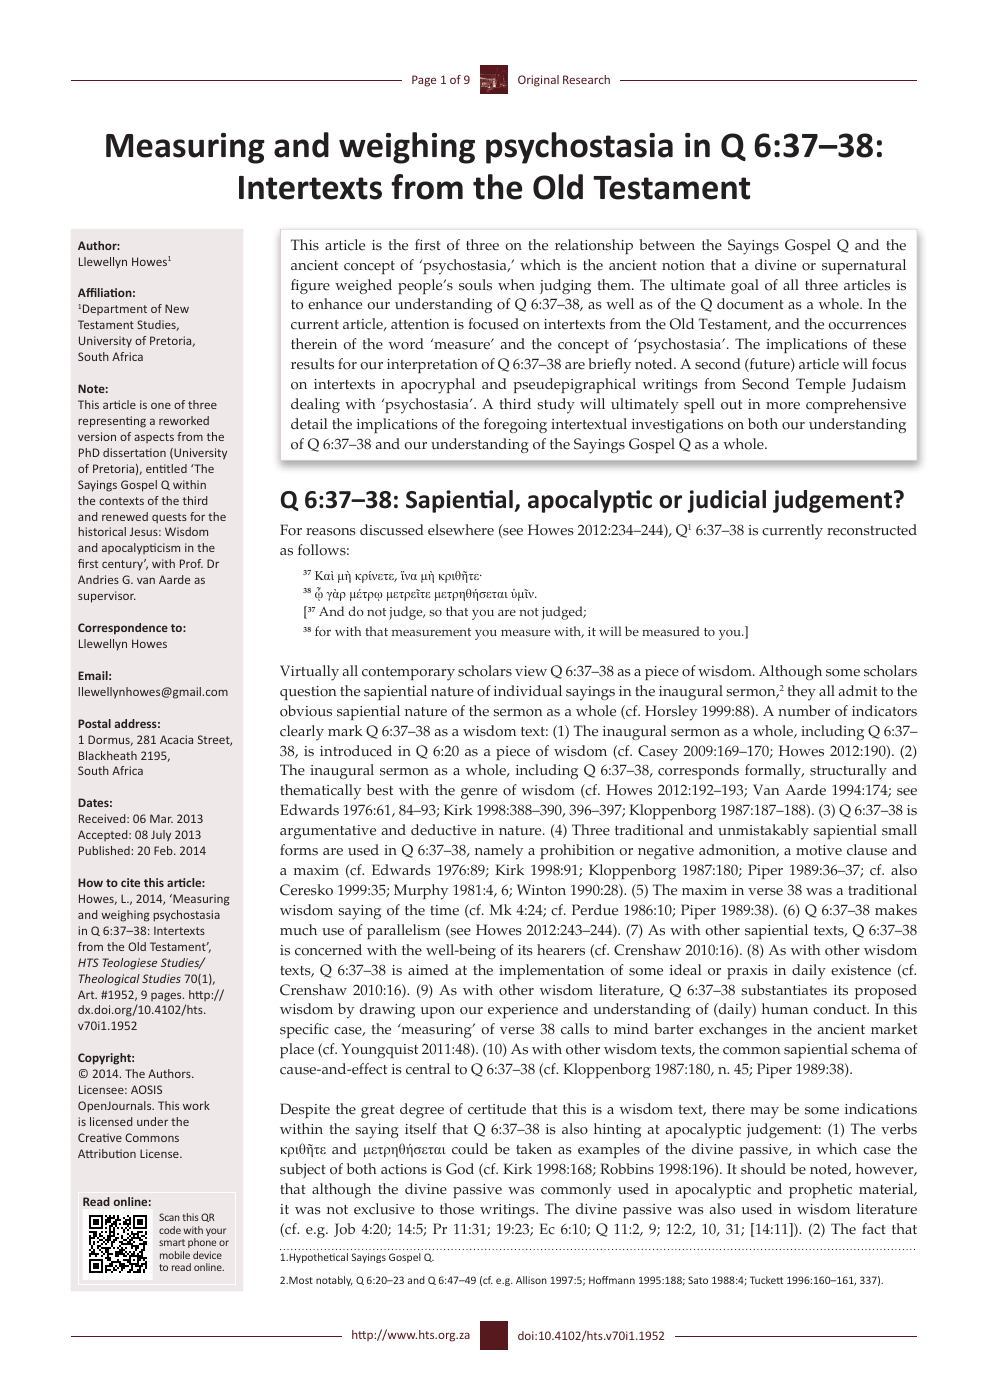 Measuring and weighing psychostasia in Q 6:37–38: Intertexts